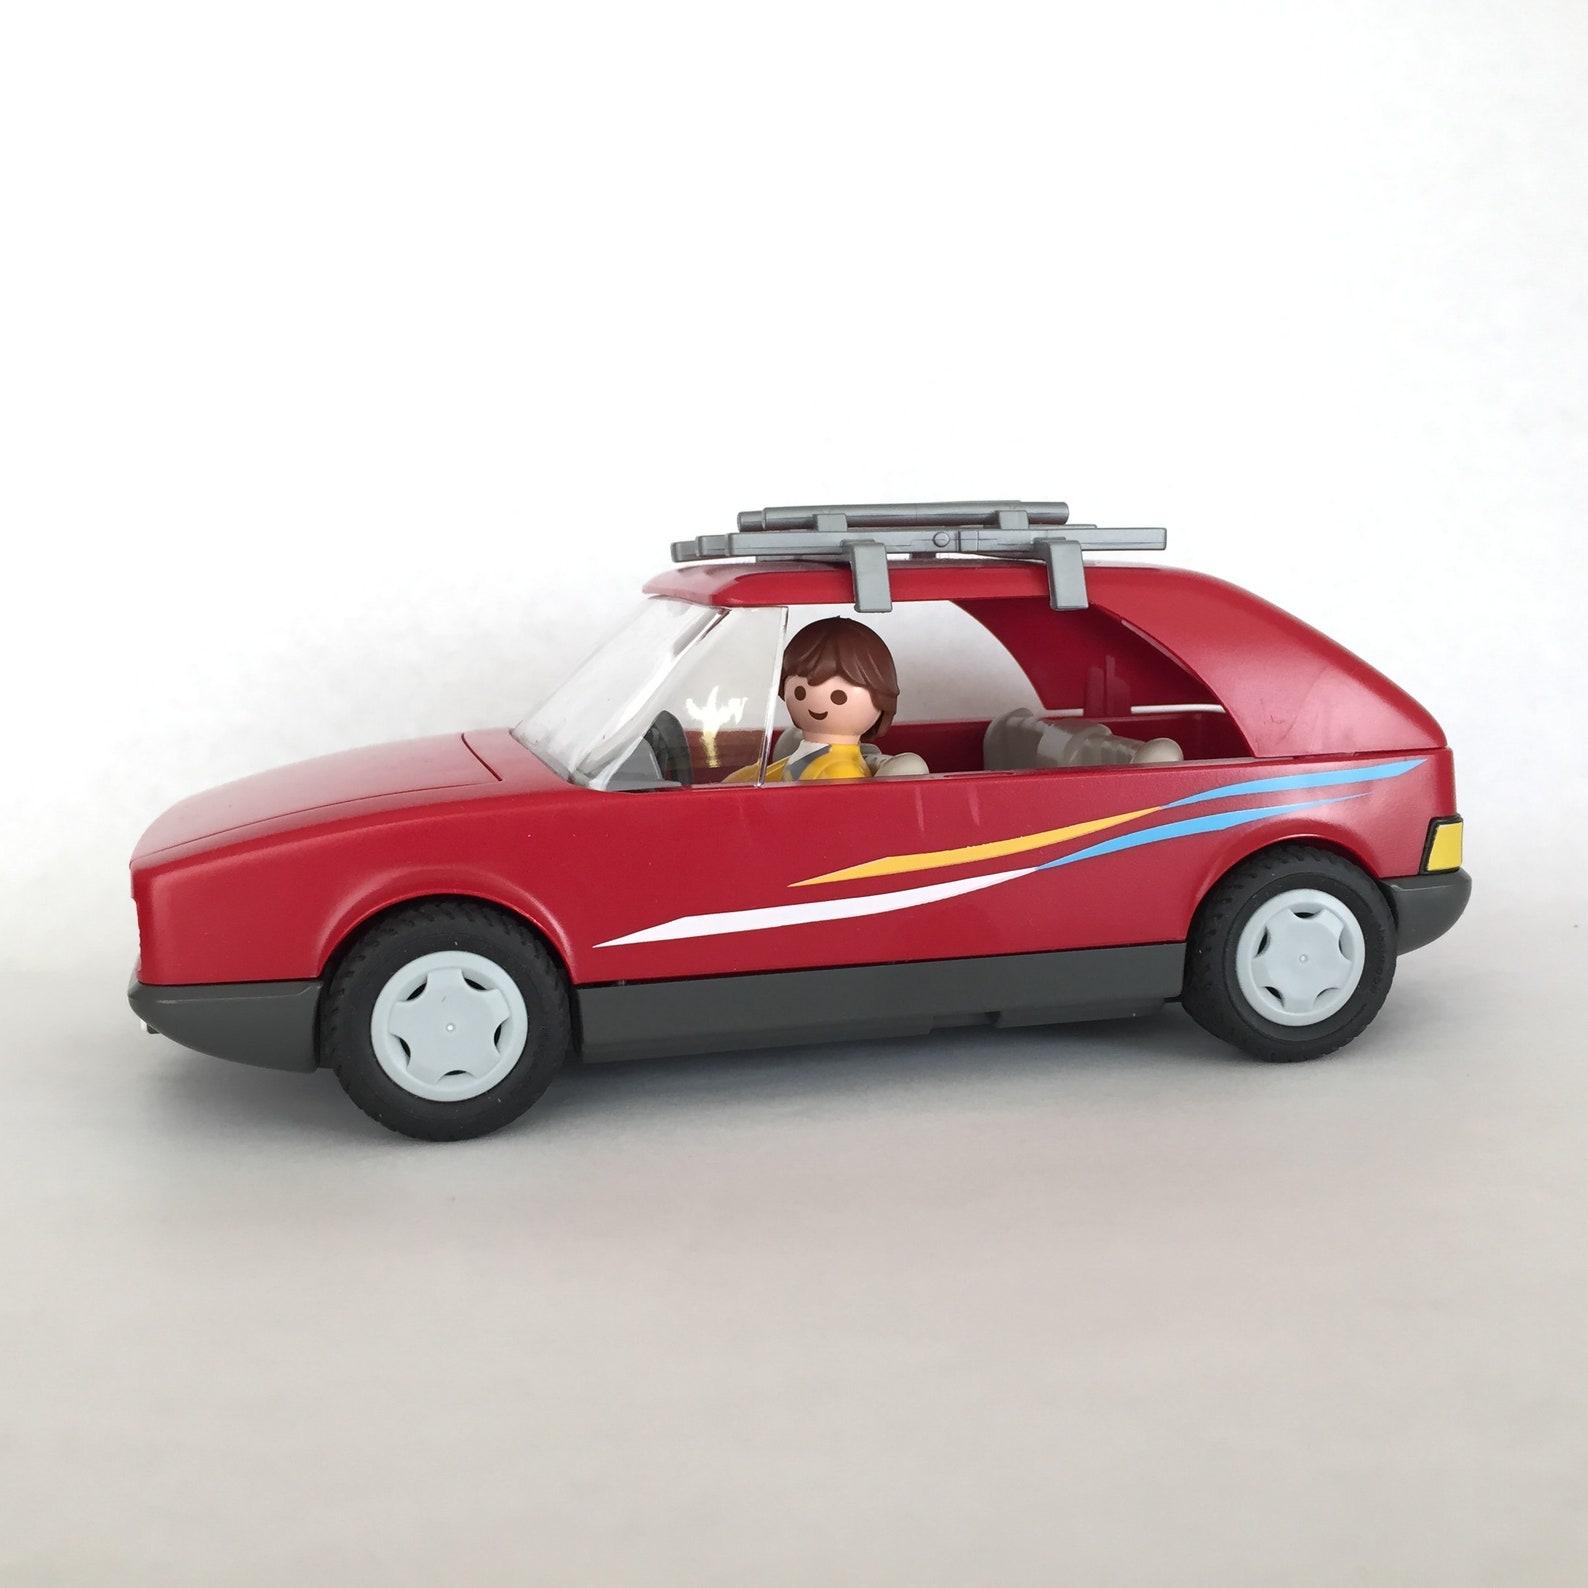 Playmobil, red family car, vintage, kids, toys, male figurine